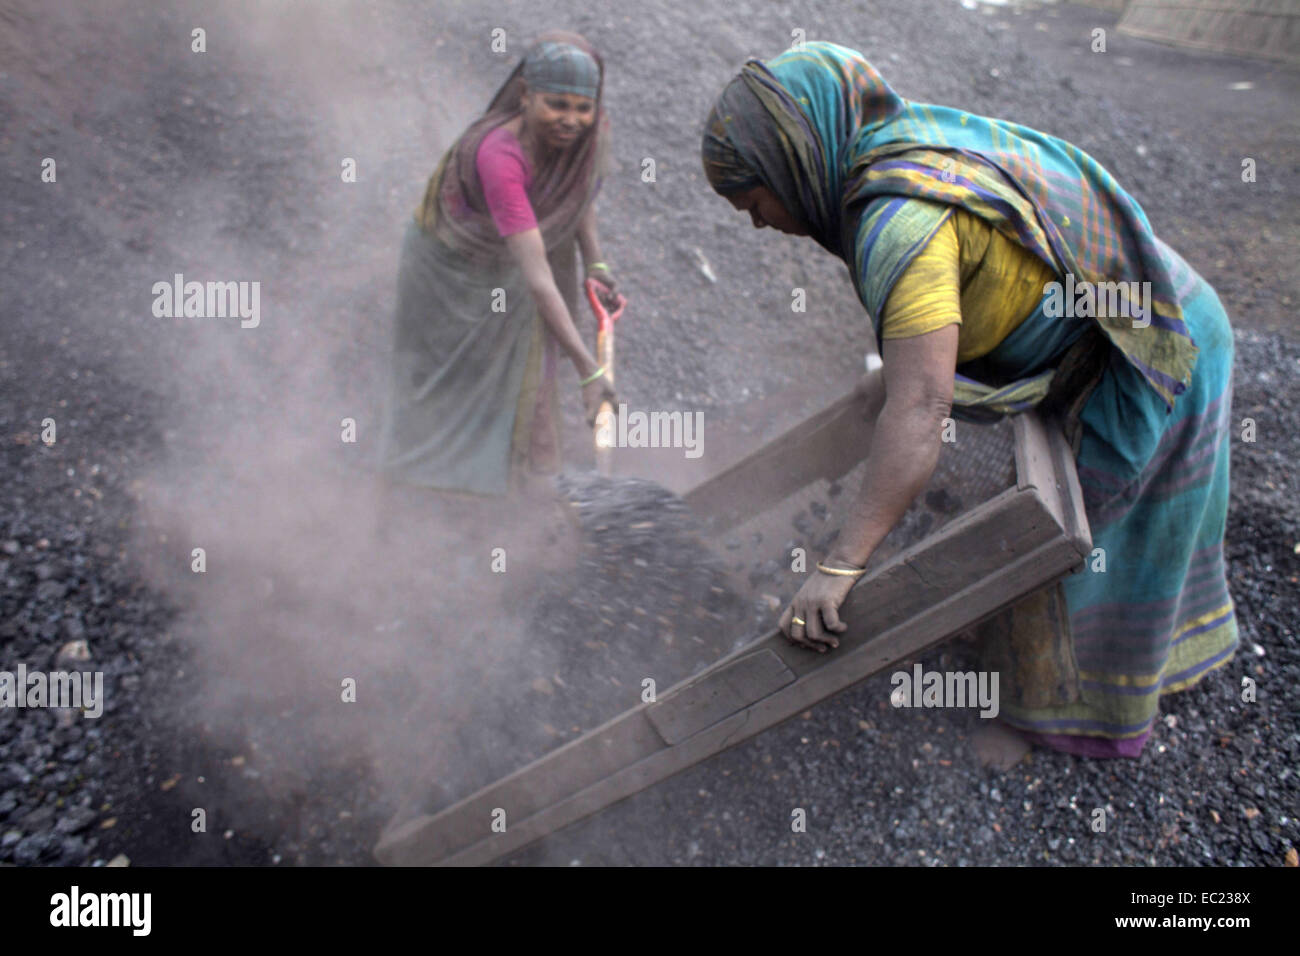 Munshigonj, Bangladesh. 8th Dec, 2014. women labor working in dusty environment of waste coal processing by earning - Stock Image